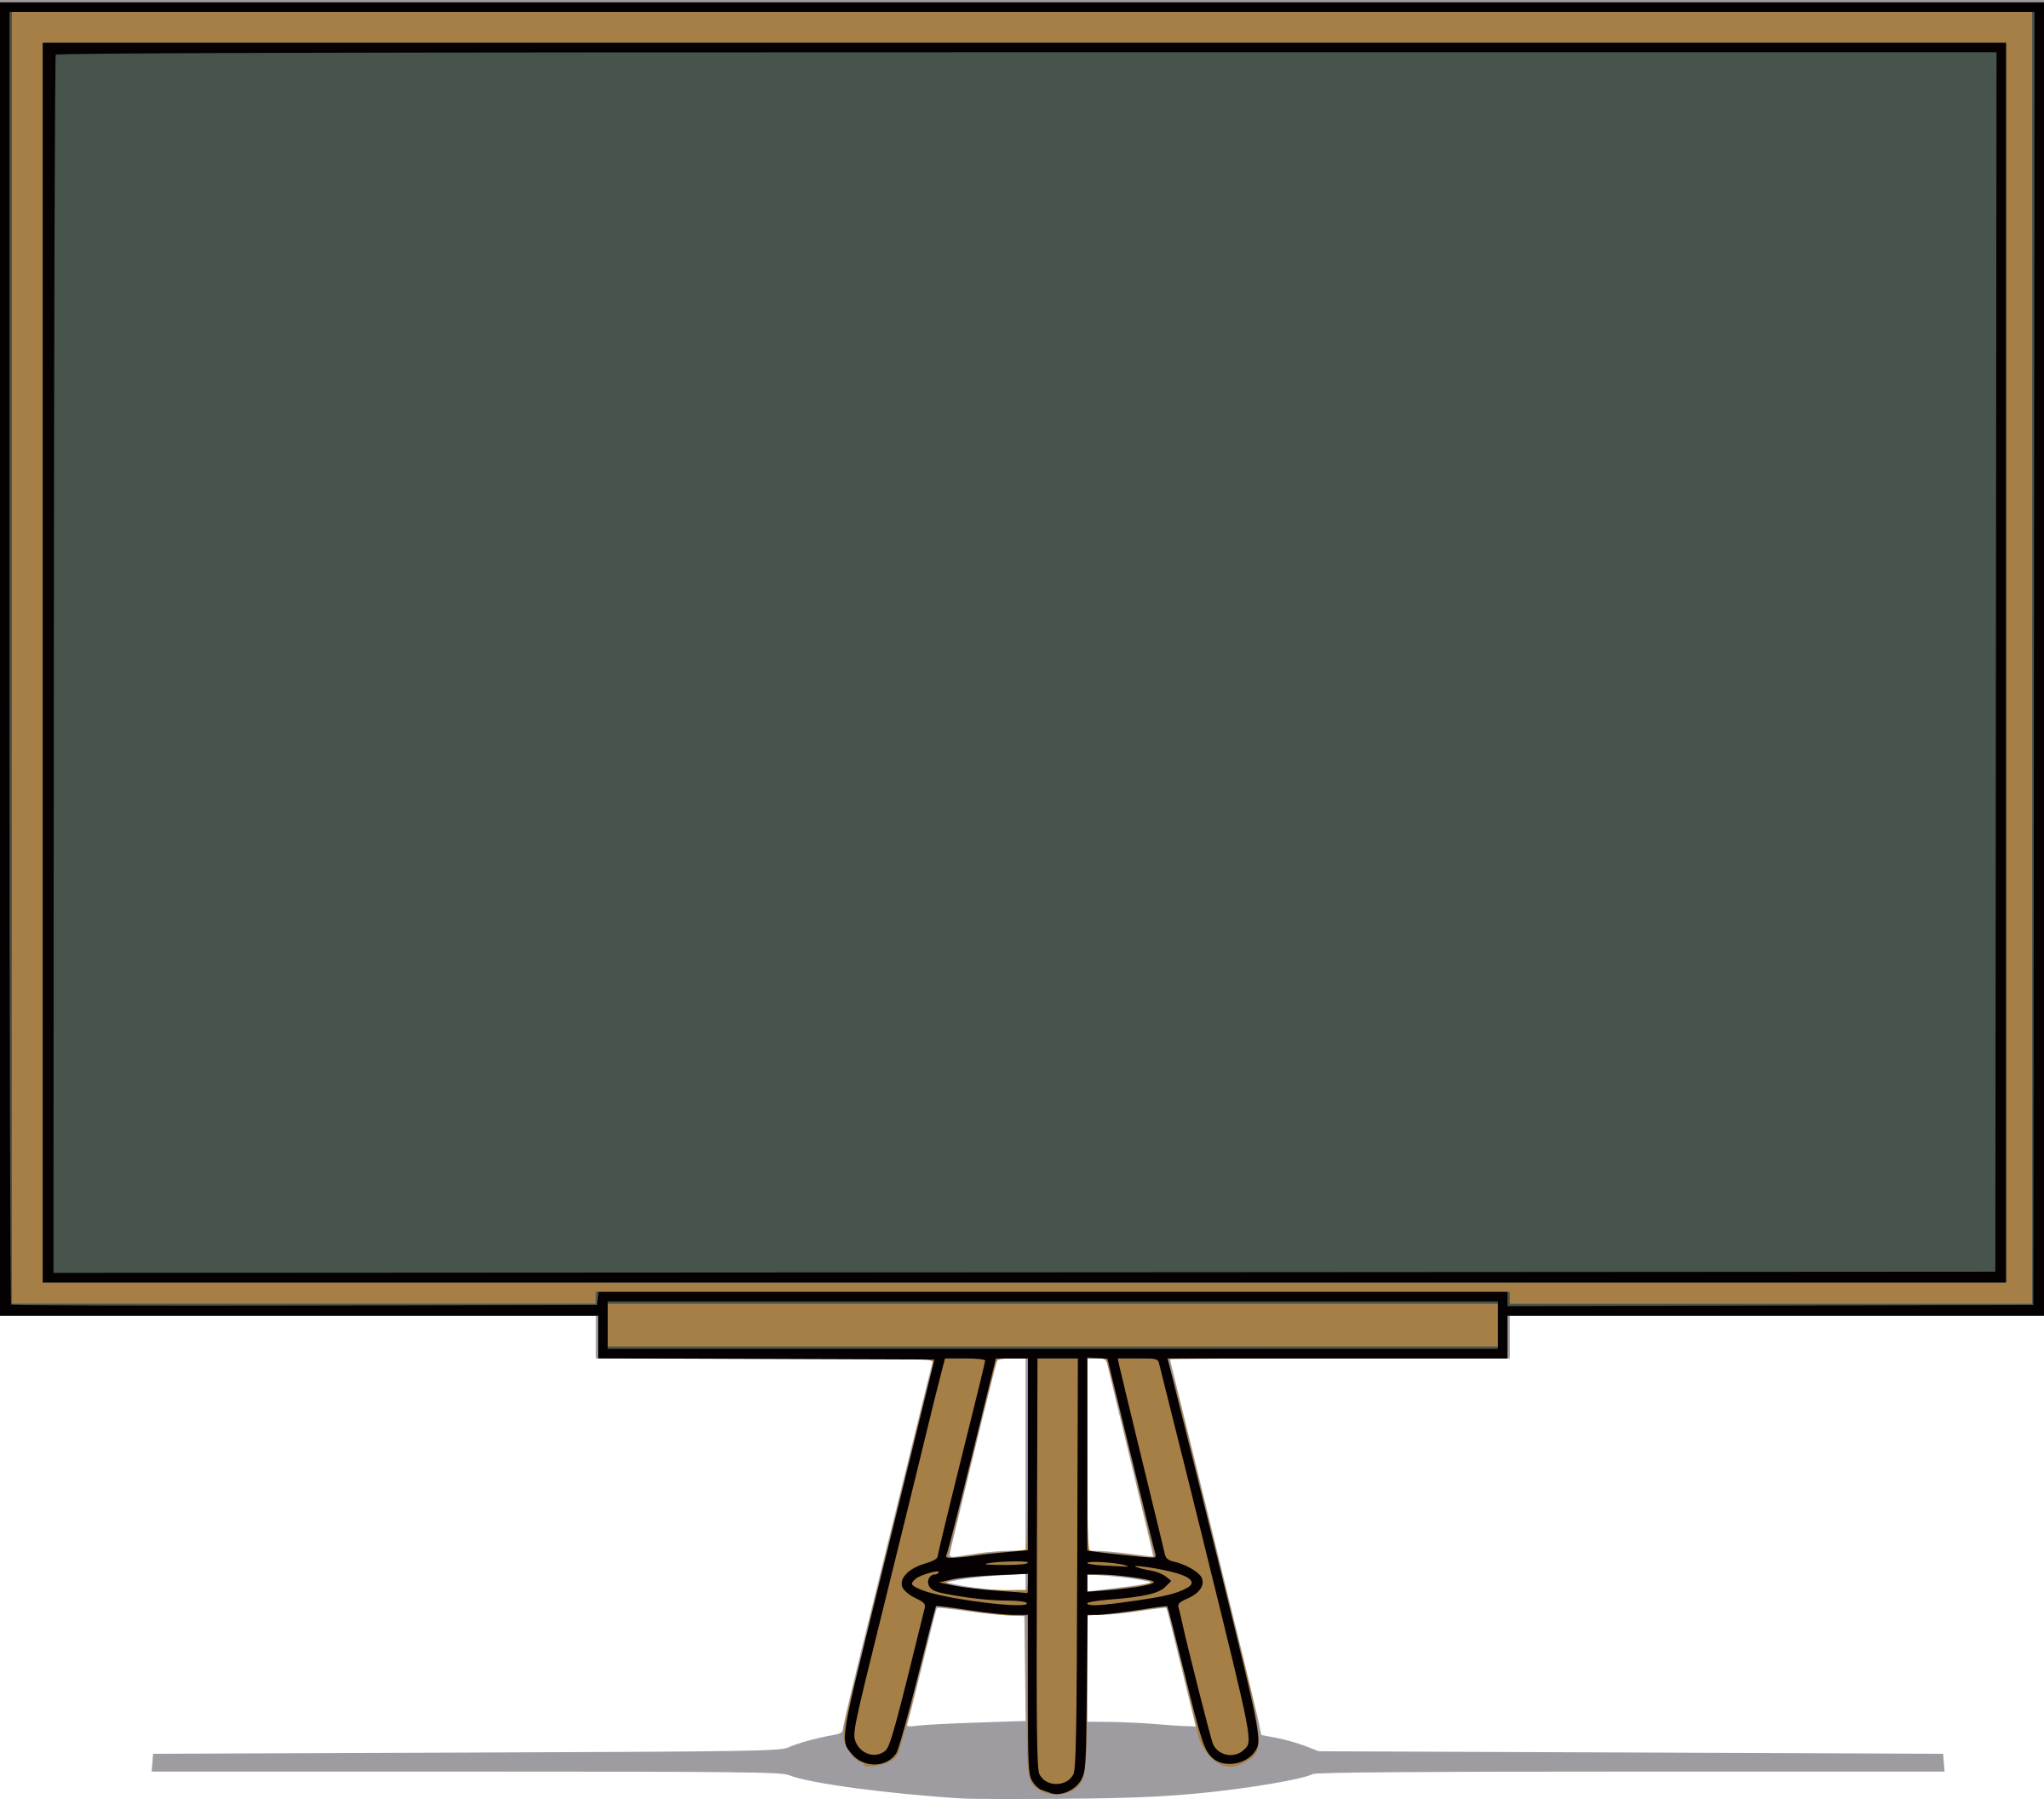 Chalkboard pictures clip art royalty free Clipart - Chalkboard royalty free